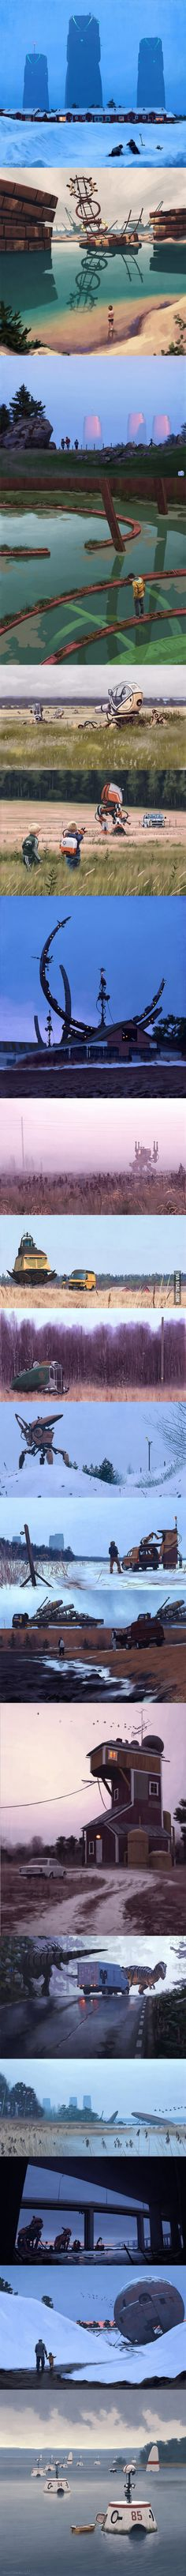 Incredible paintings of sci-fi Swedish suburbia by Simon Stålenhag